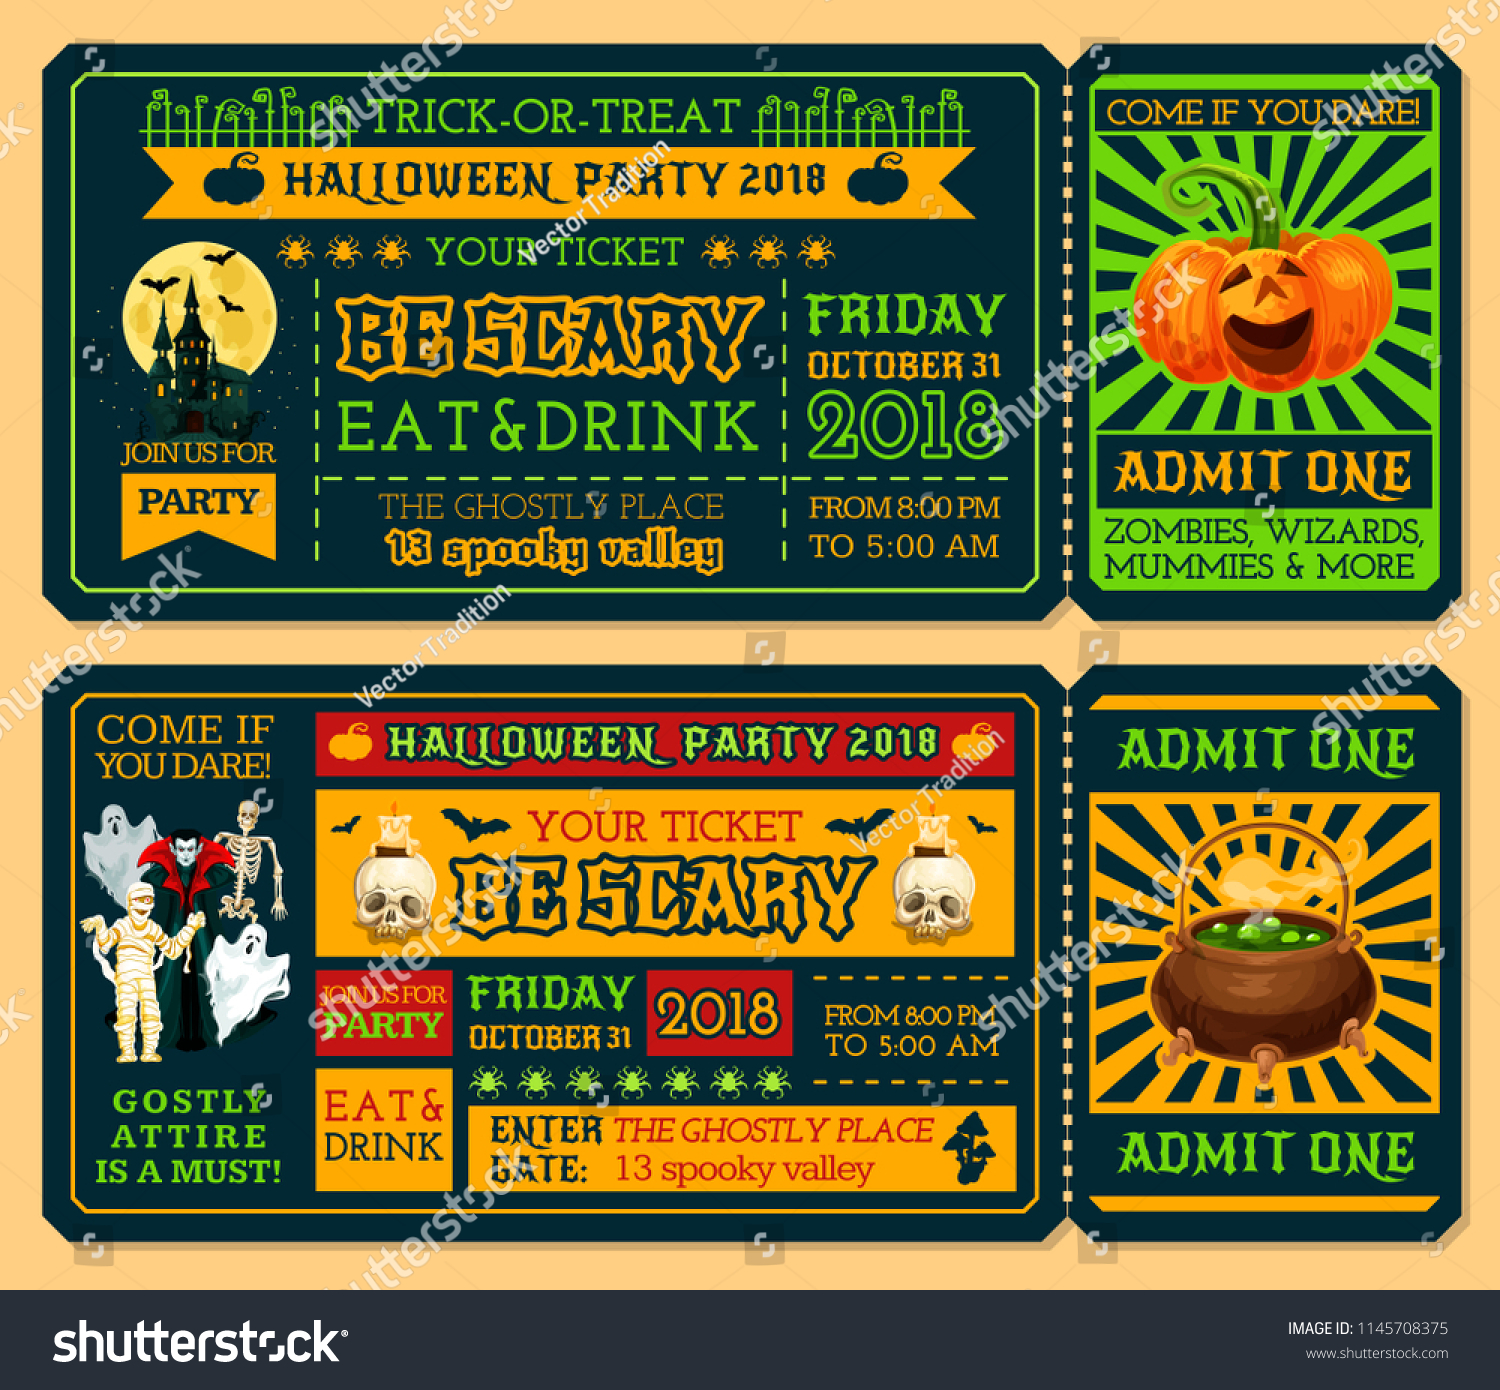 halloween ticket template for october holiday night party admit one ticket design with horror pumpkin